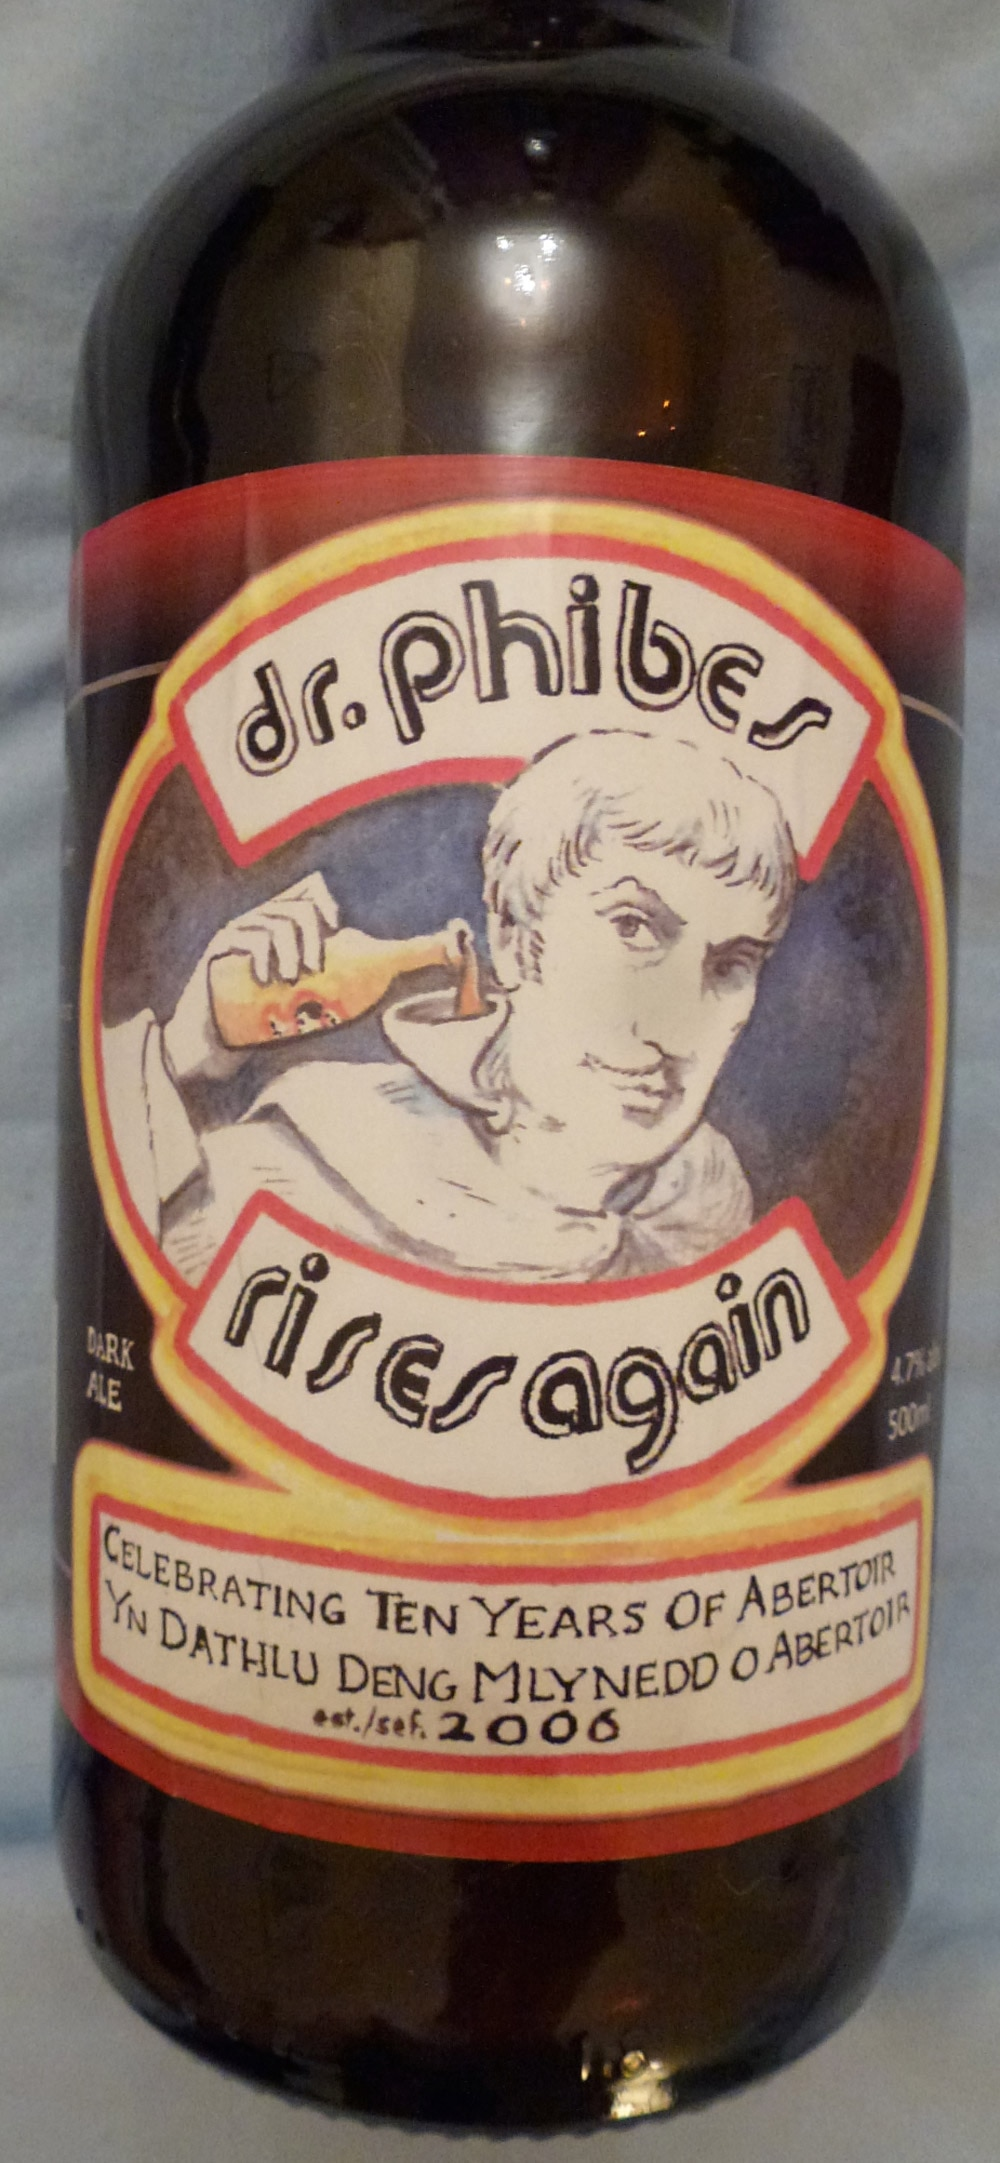 Abertoir: The International Horror Festival of Wales puts out a special beer each year. This year one of the ales honored Vincent Price.